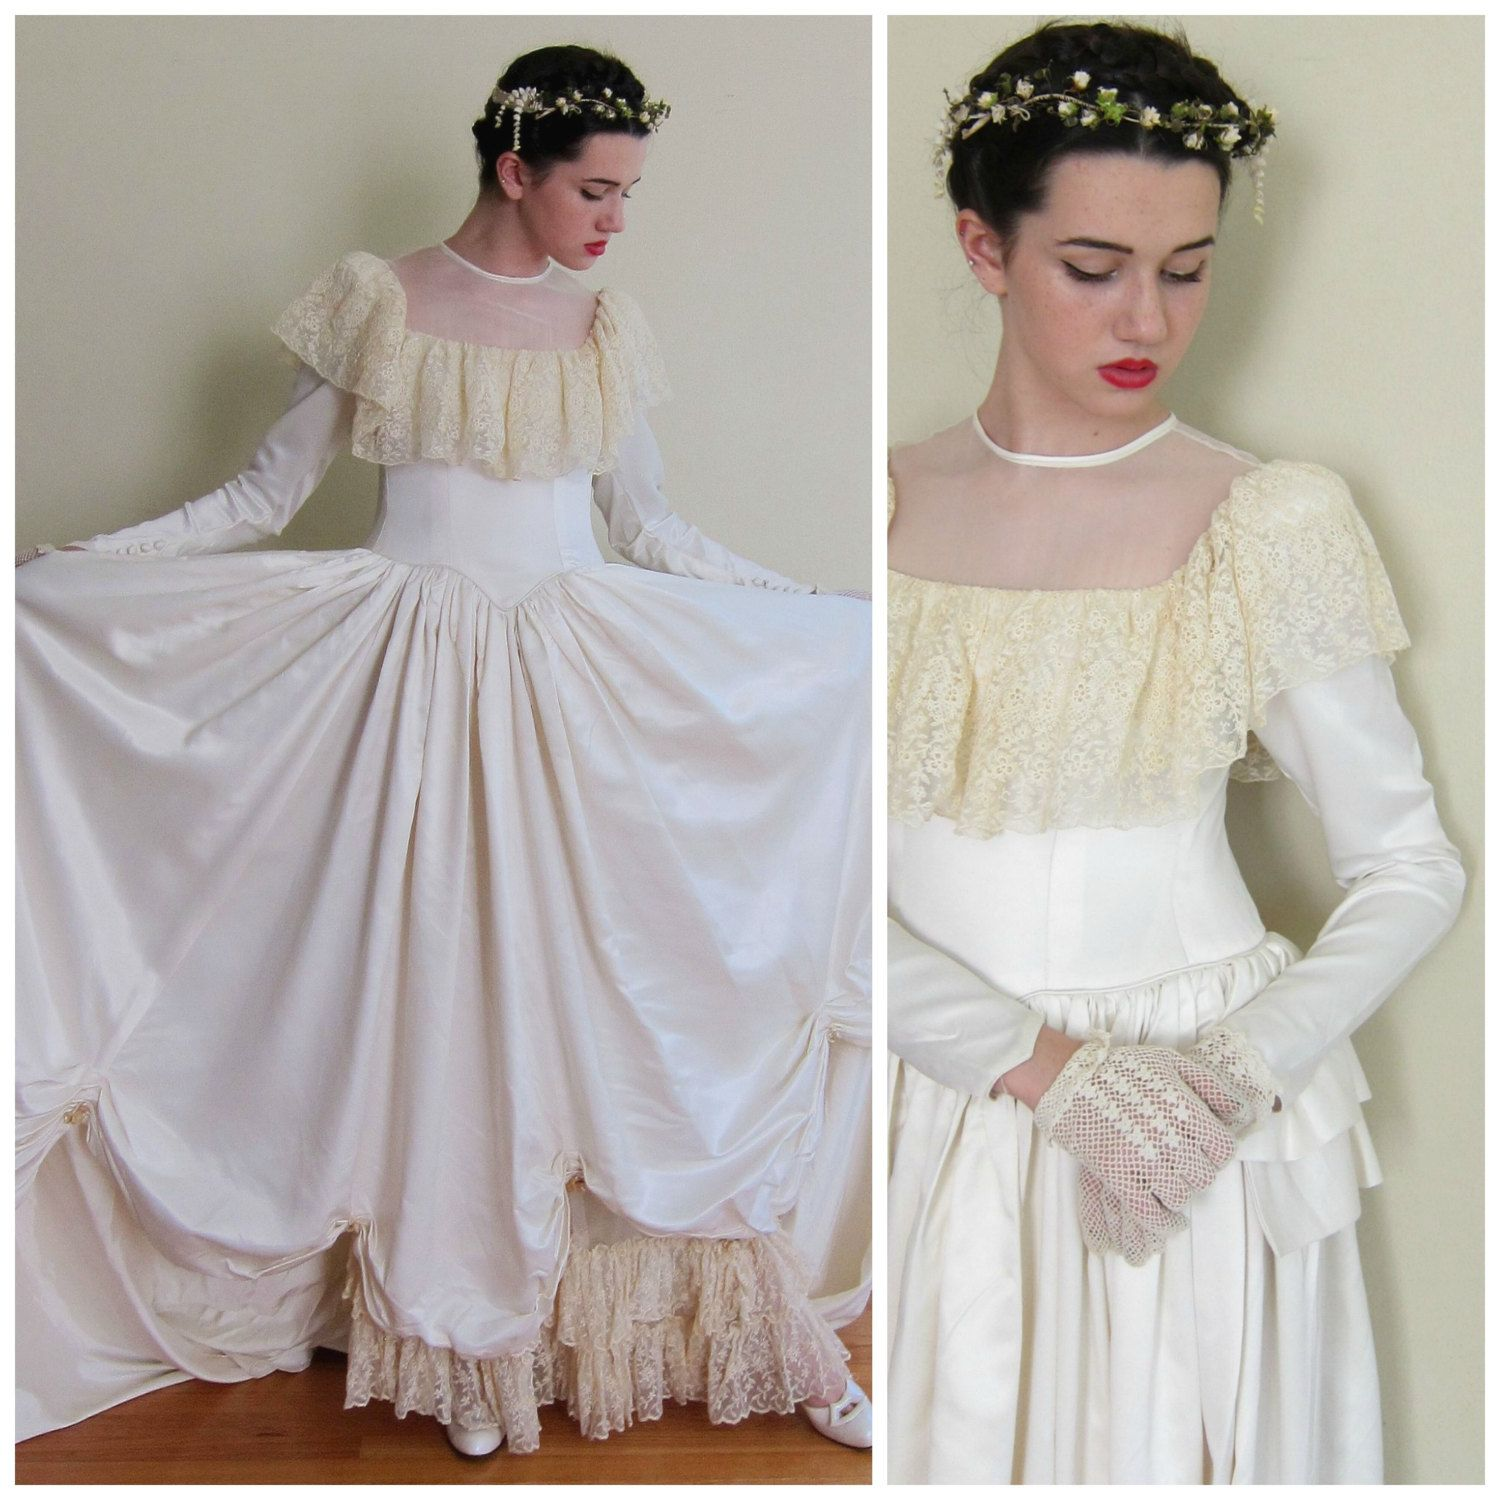 Vintage 1940s Long Sleeved Wedding Dress with Crochet Lace